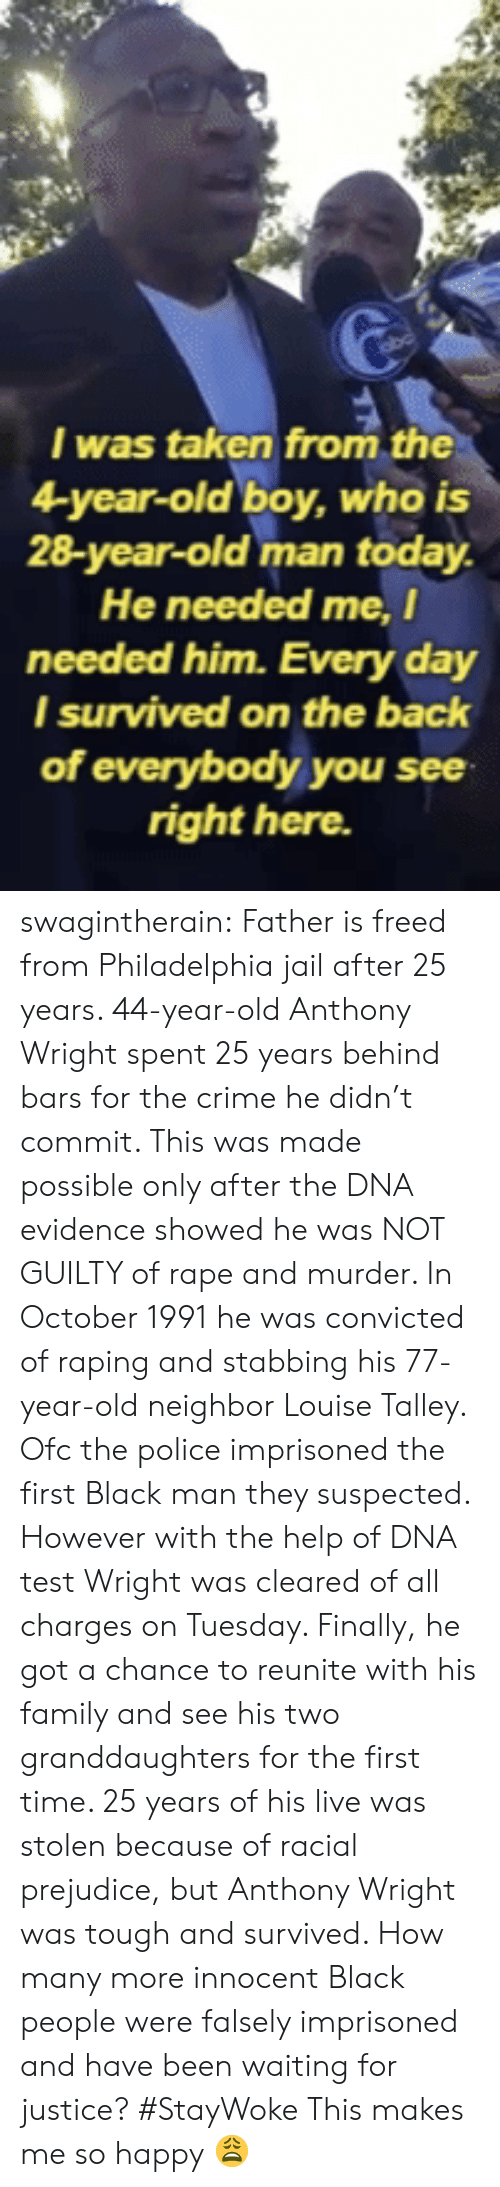 Crime, Family, and Jail: I was taken from the  4-year-old boy, who is  28-year-old man today.  He needed me, I  needed him. Every day  l survived on the back  of everybody you see  right here. swagintherain:  Father is freed from Philadelphia jail after 25 years.   44-year-old Anthony Wright spent 25 years behind bars for the crime he didn't commit. This was made possible only after the DNA evidence showed he was NOT GUILTY of rape and murder. In October 1991 he was convicted of raping and stabbing his 77-year-old neighbor Louise Talley. Ofc the police imprisoned the first Black man they suspected. However with the help of DNA test Wright was cleared of all charges on Tuesday. Finally, he got a chance to reunite with his family and see his two granddaughters for the first time.  25 years of his live was stolen because of racial prejudice, but Anthony Wright was tough and survived. How many more innocent Black people were falsely imprisoned and have been waiting for justice? #StayWoke   This makes me so happy 😩